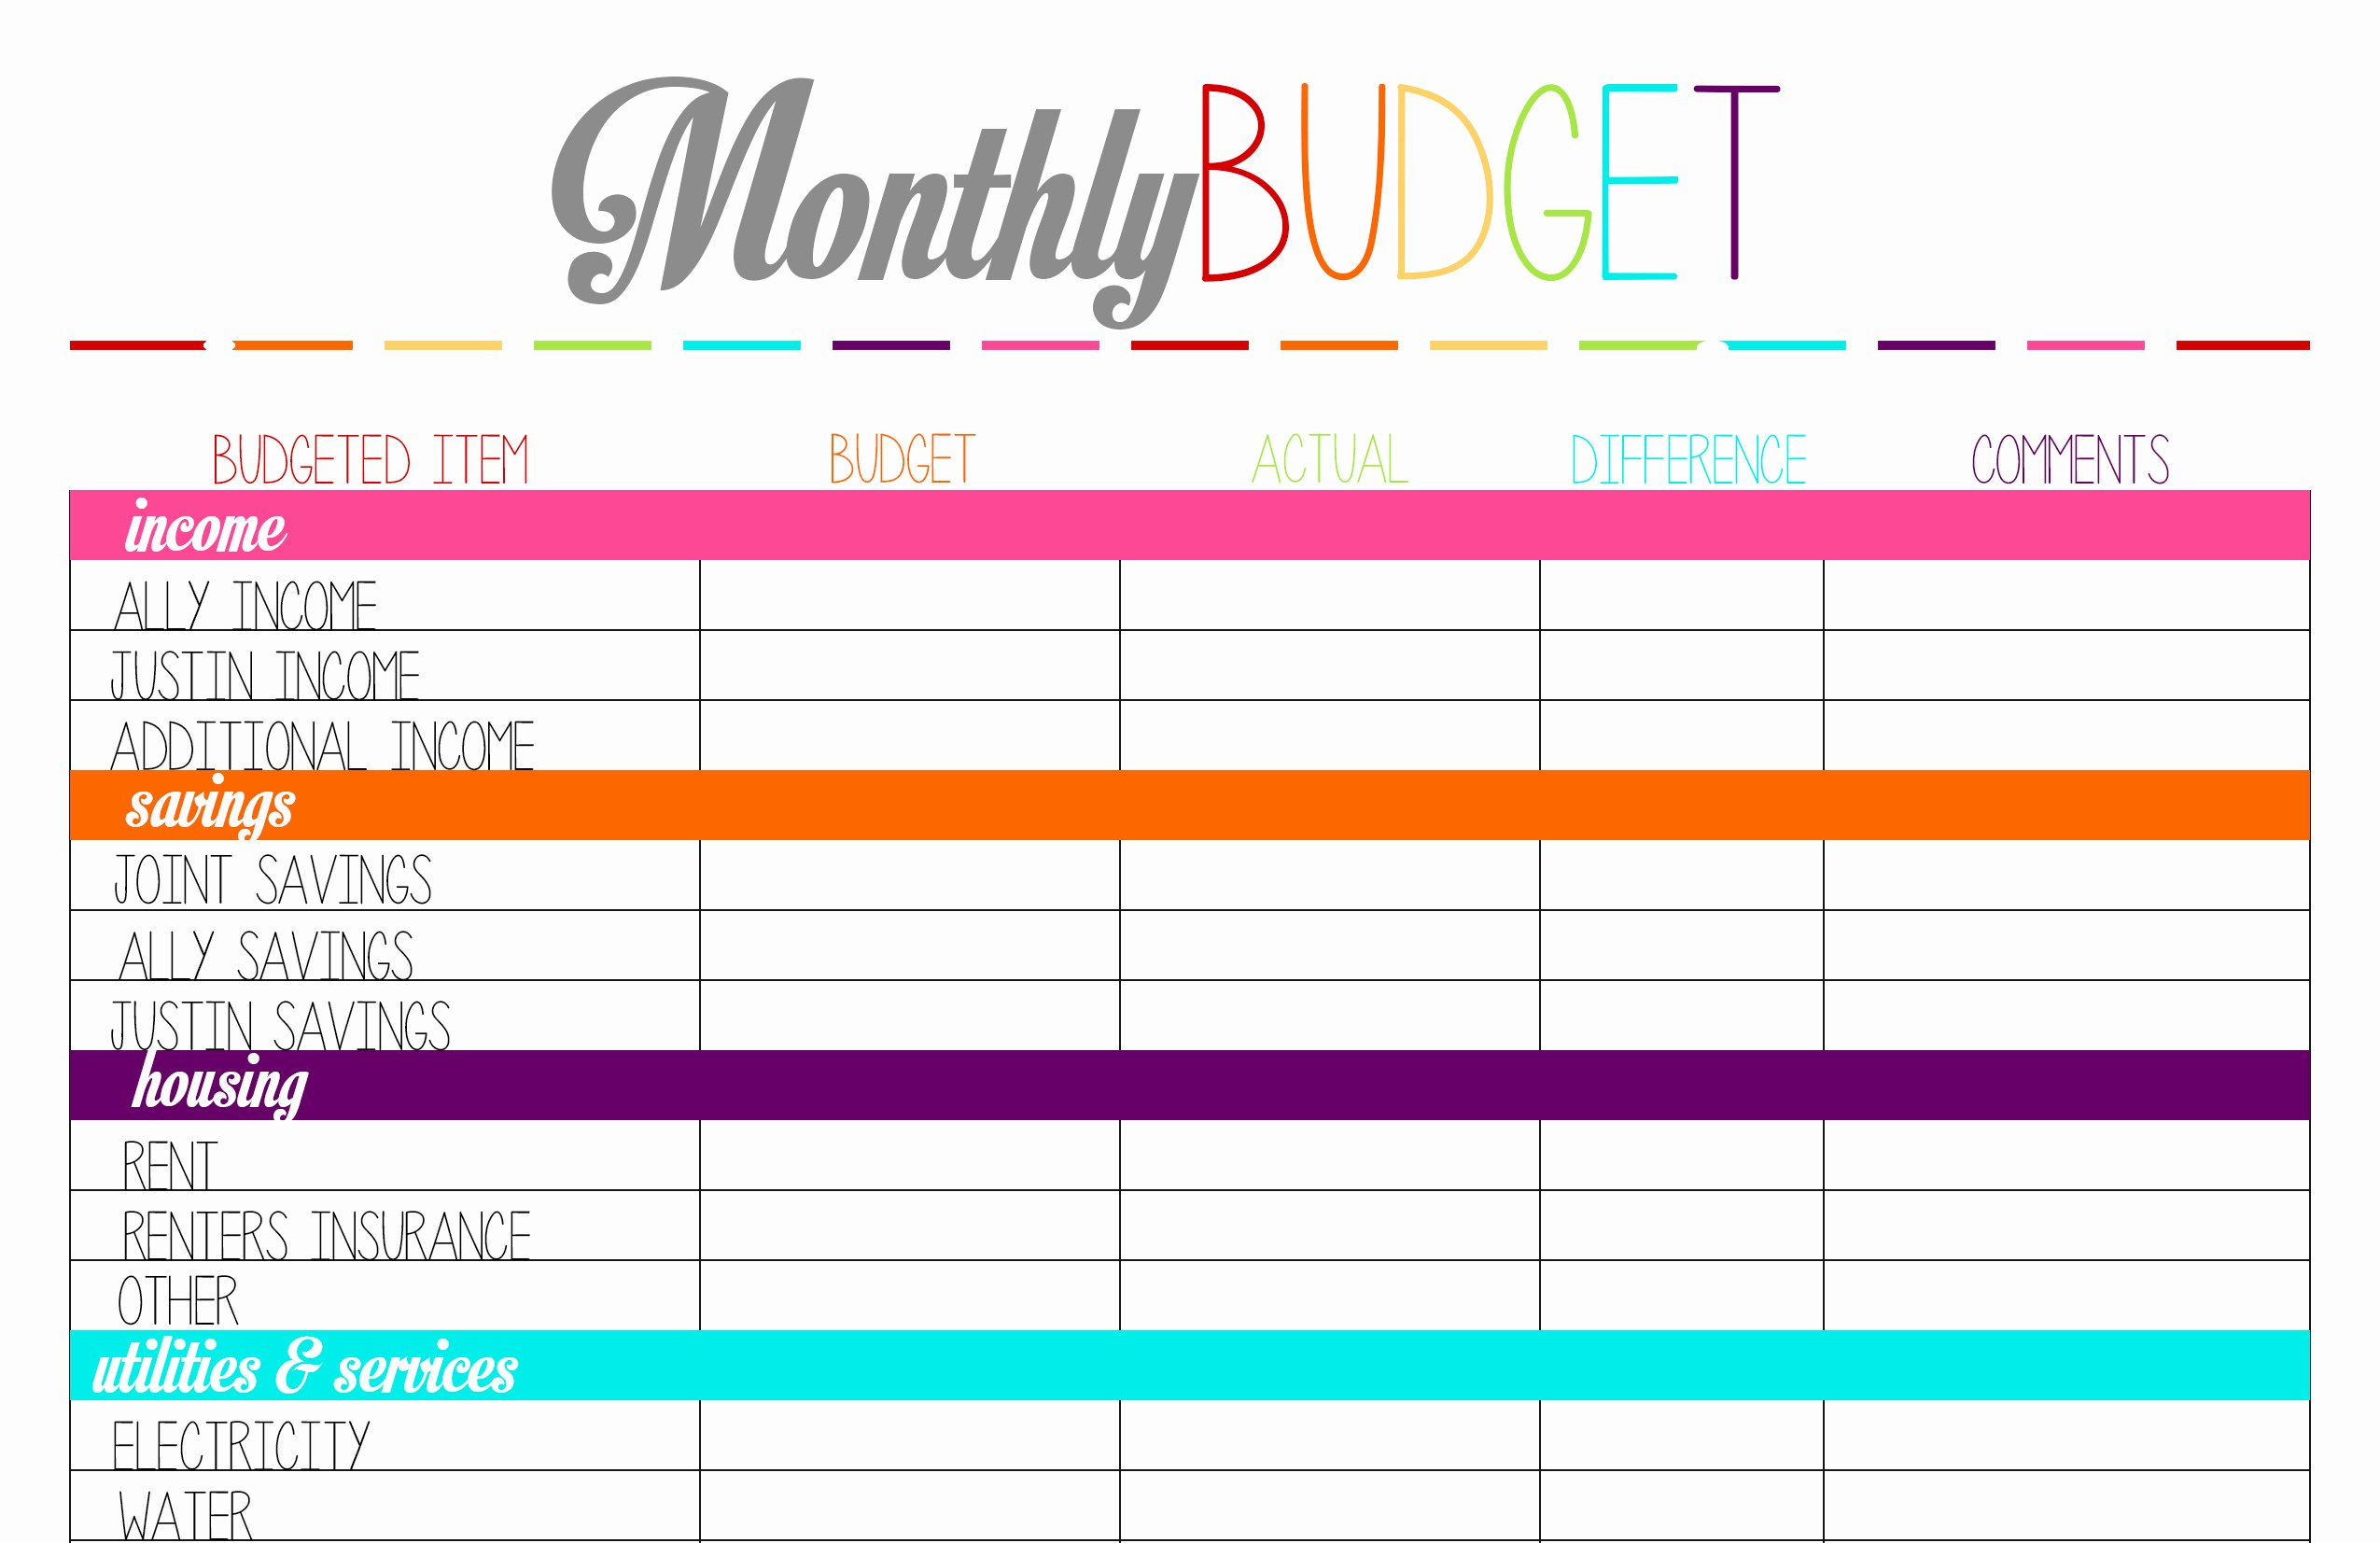 Monthly Budget Planner Template Unique top 5 Posts Of 2014 – Ally Jean Blog